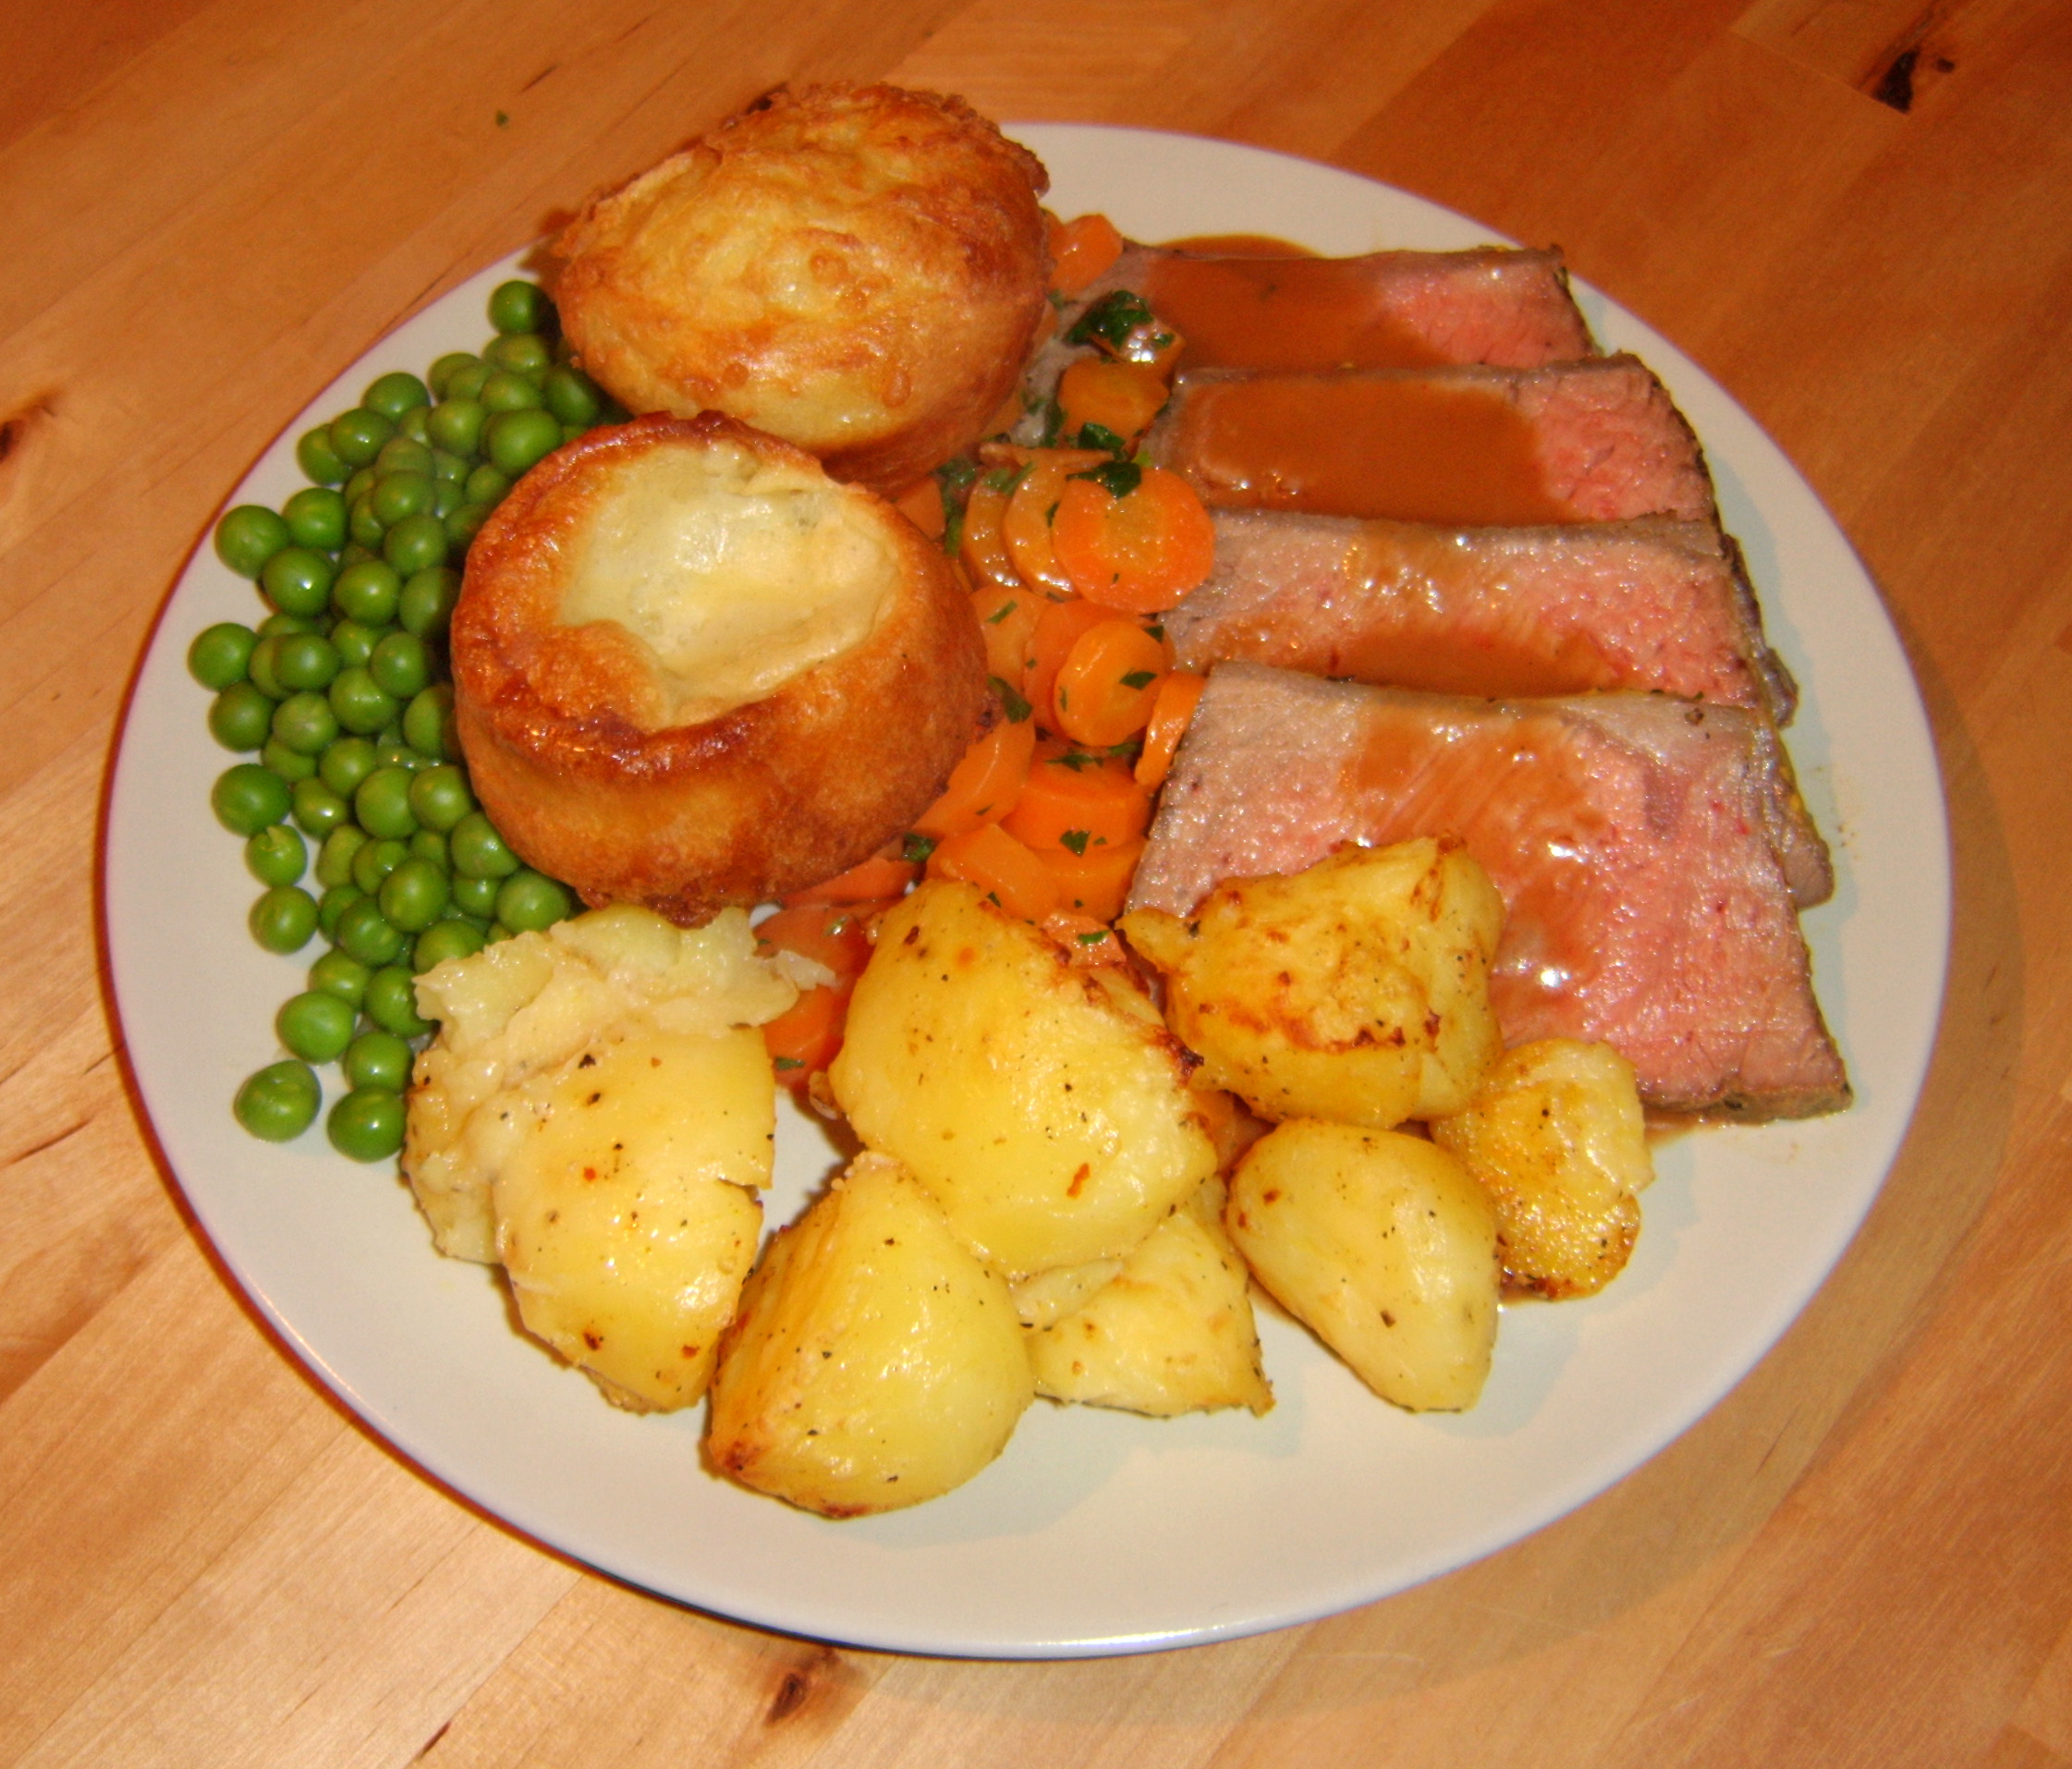 File:Roastbeef with yorkshire puddings.jpg - Wikipedia, the free ...